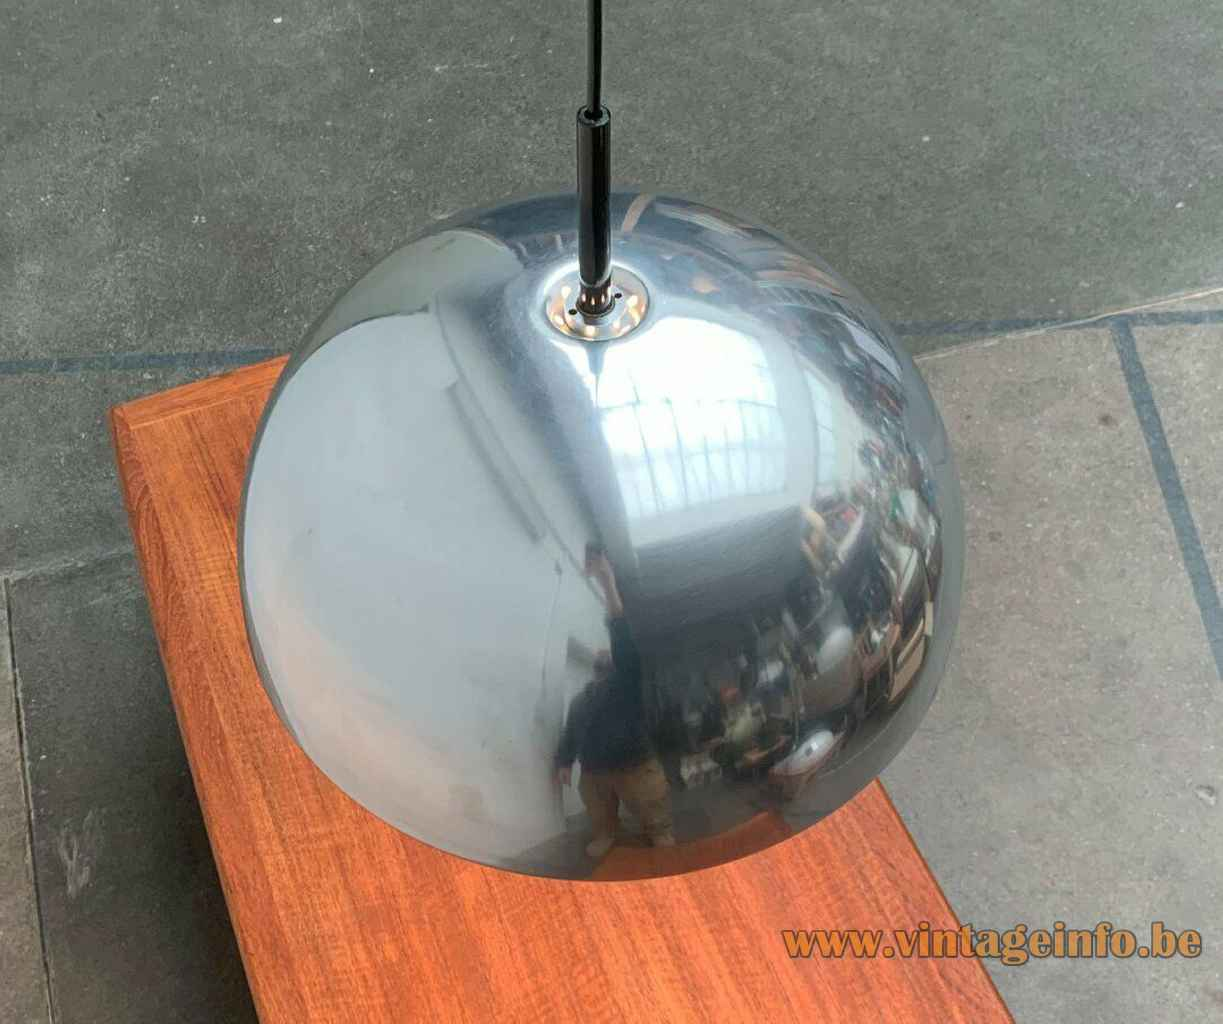 Staff pendant lamp 5071 chrome half round mushroom lampshade acrylic diffuser disc 1970s Germany top view